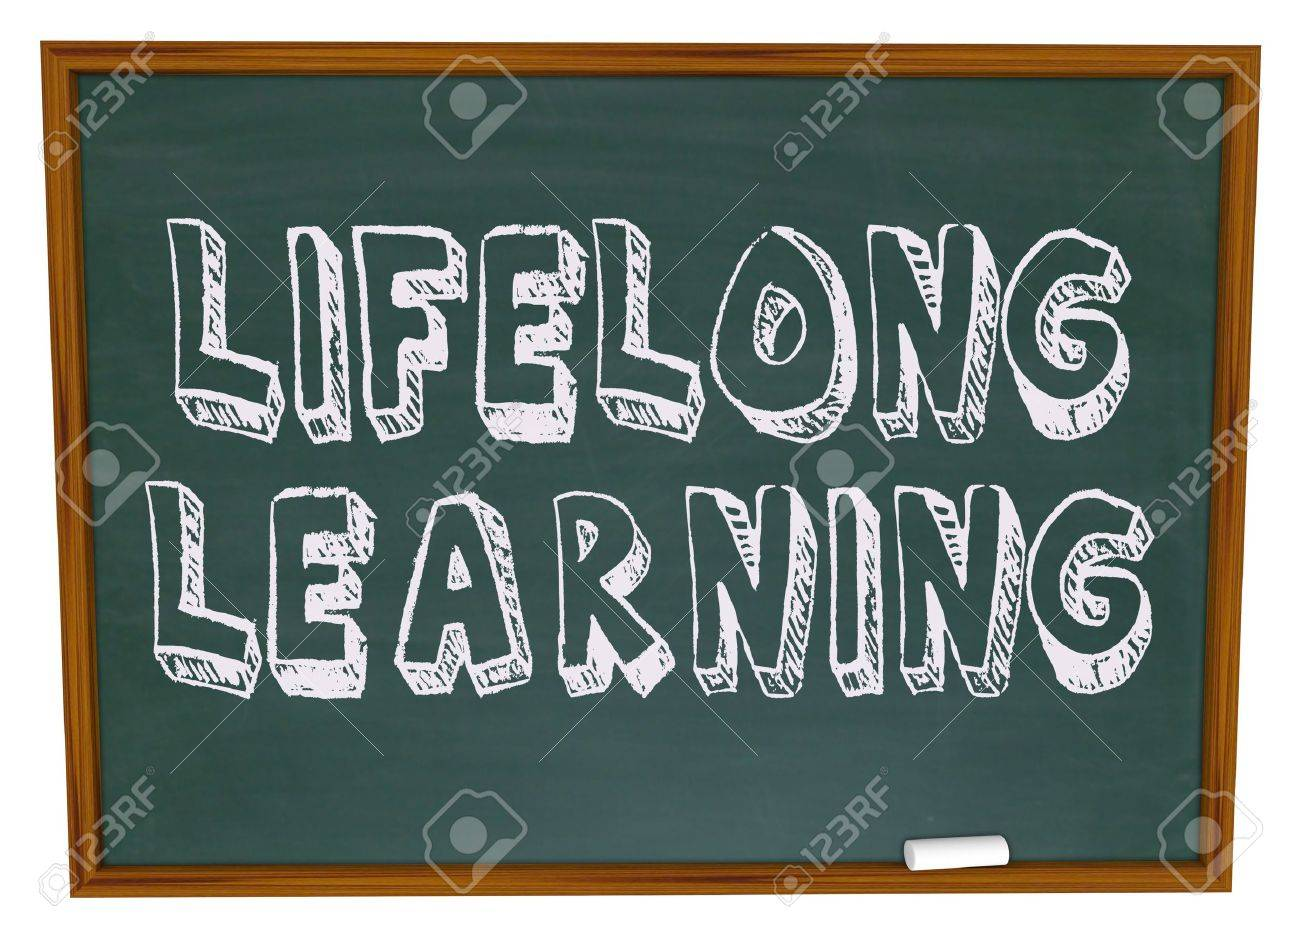 The words Lifelong Learning on a chalkboard Stock Photo - 4822377